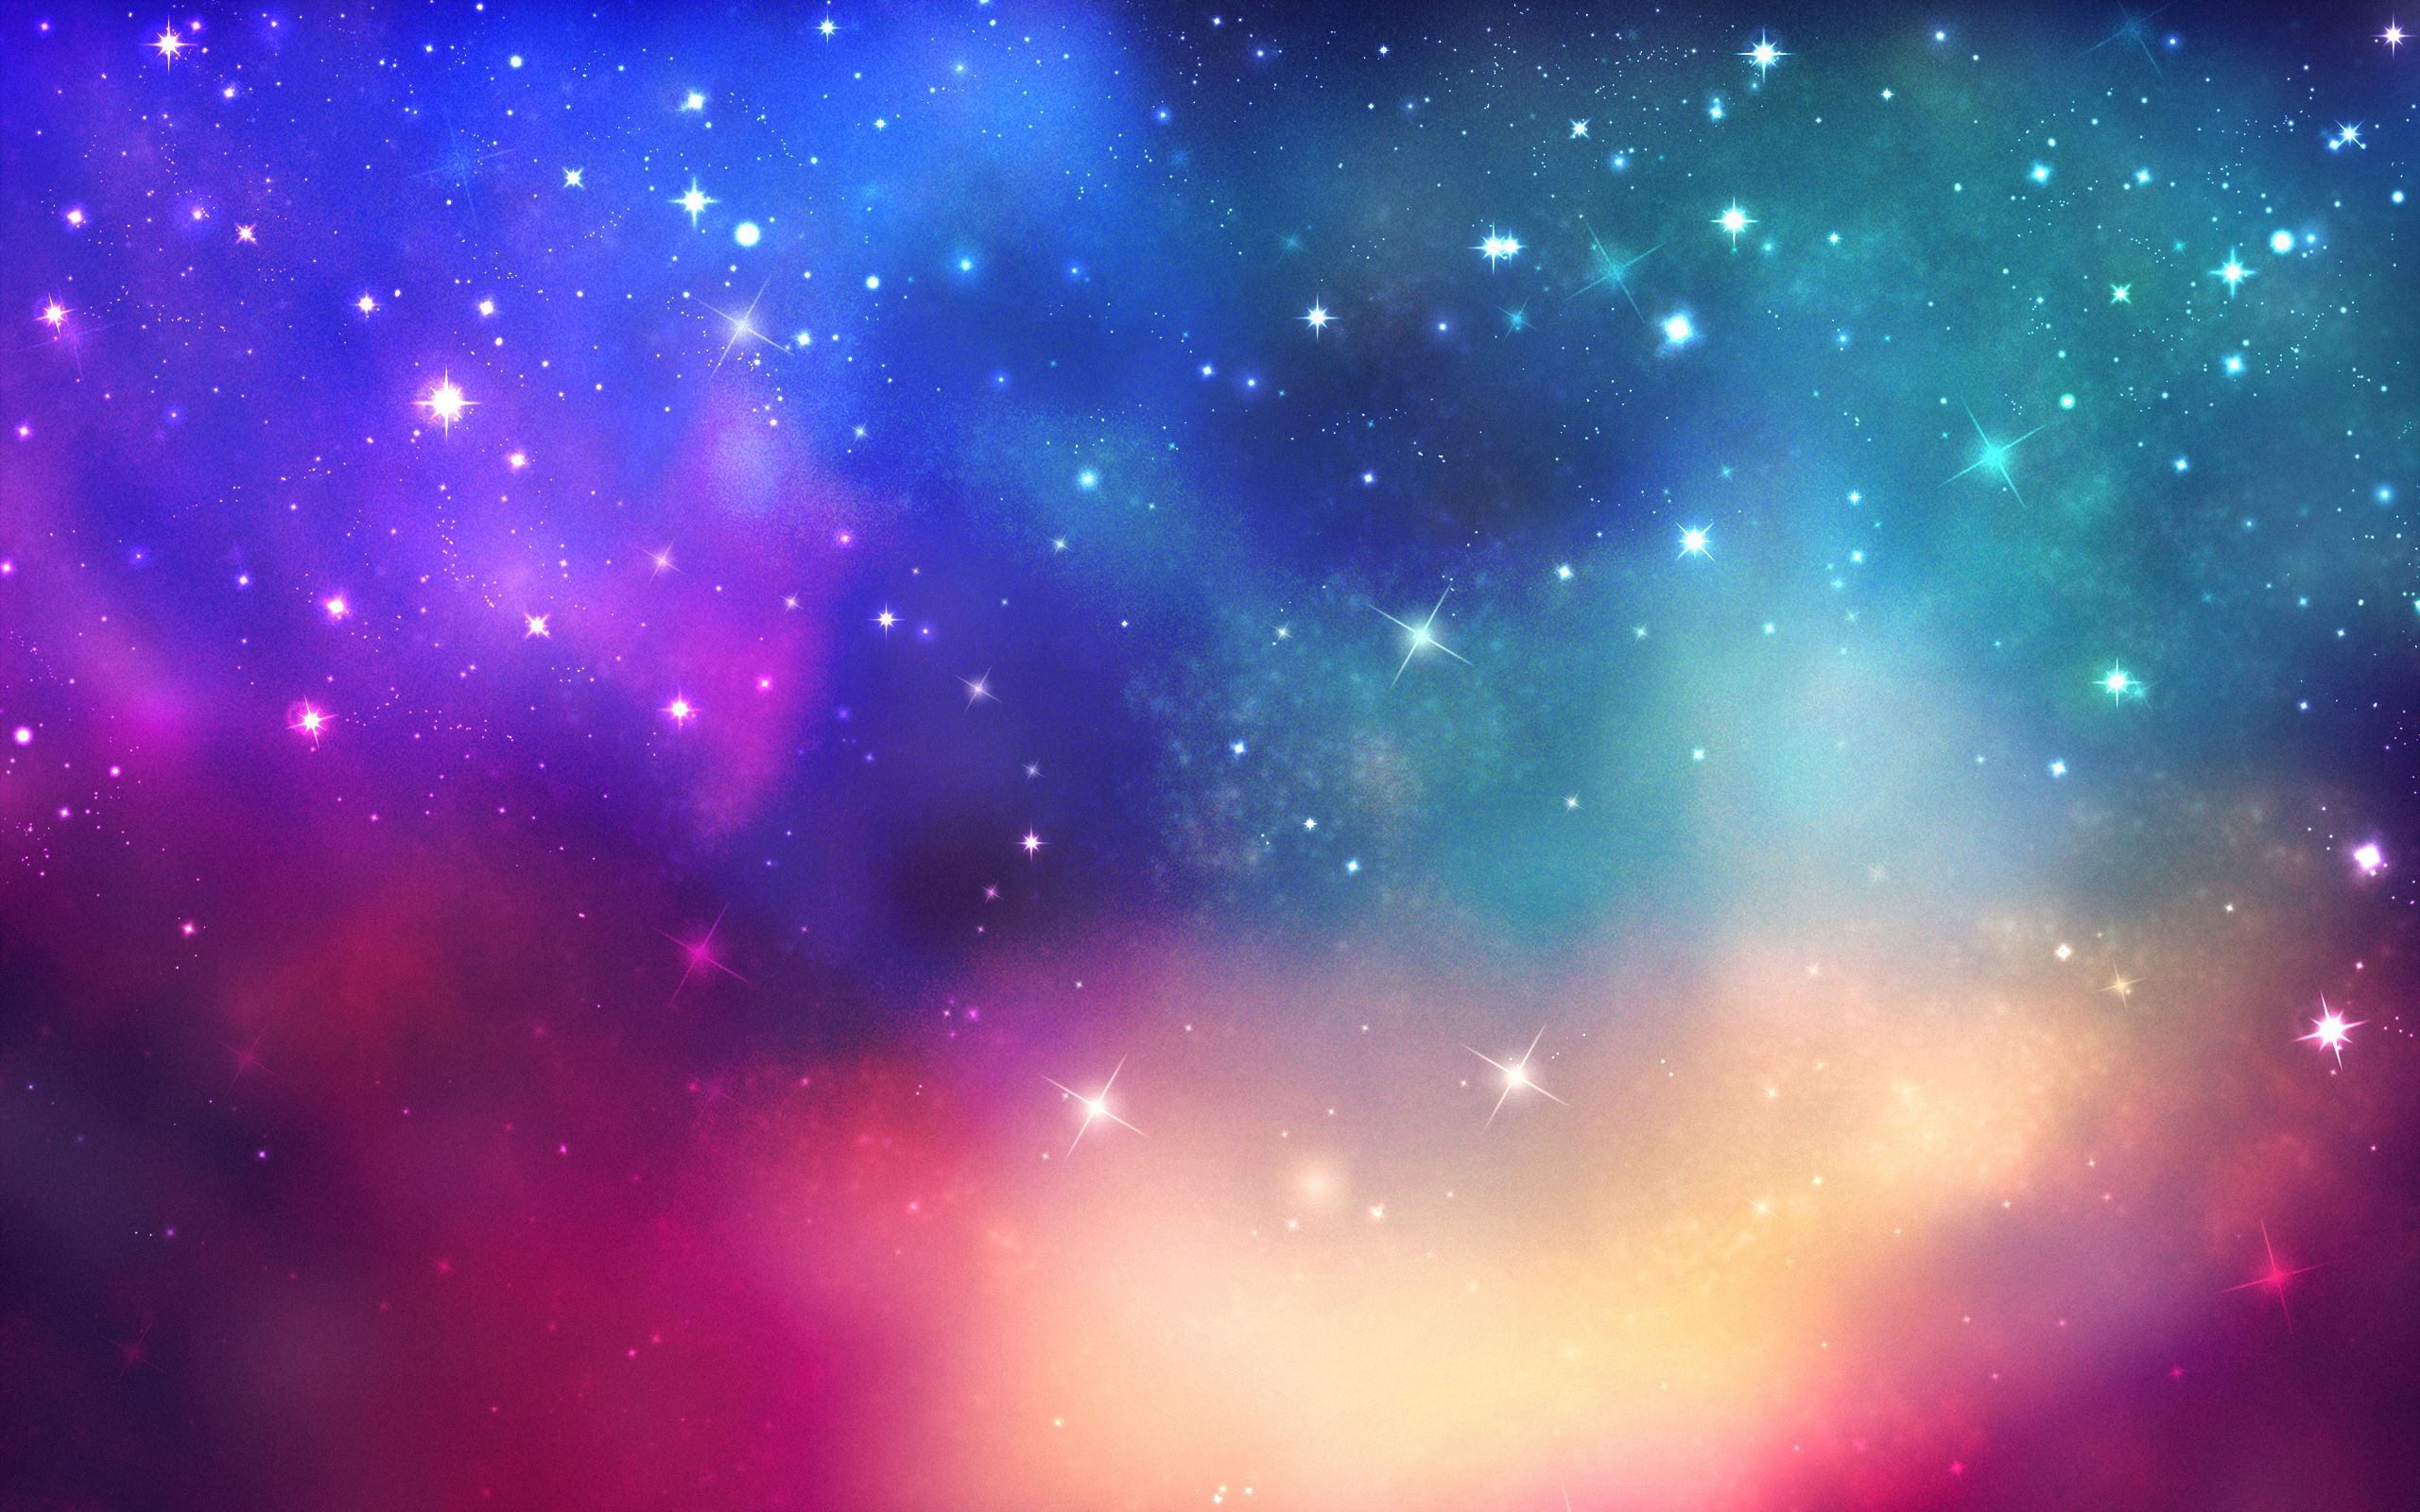 Space Stars Hd Background Wallpaper Wallpapers Lzamgs Outer